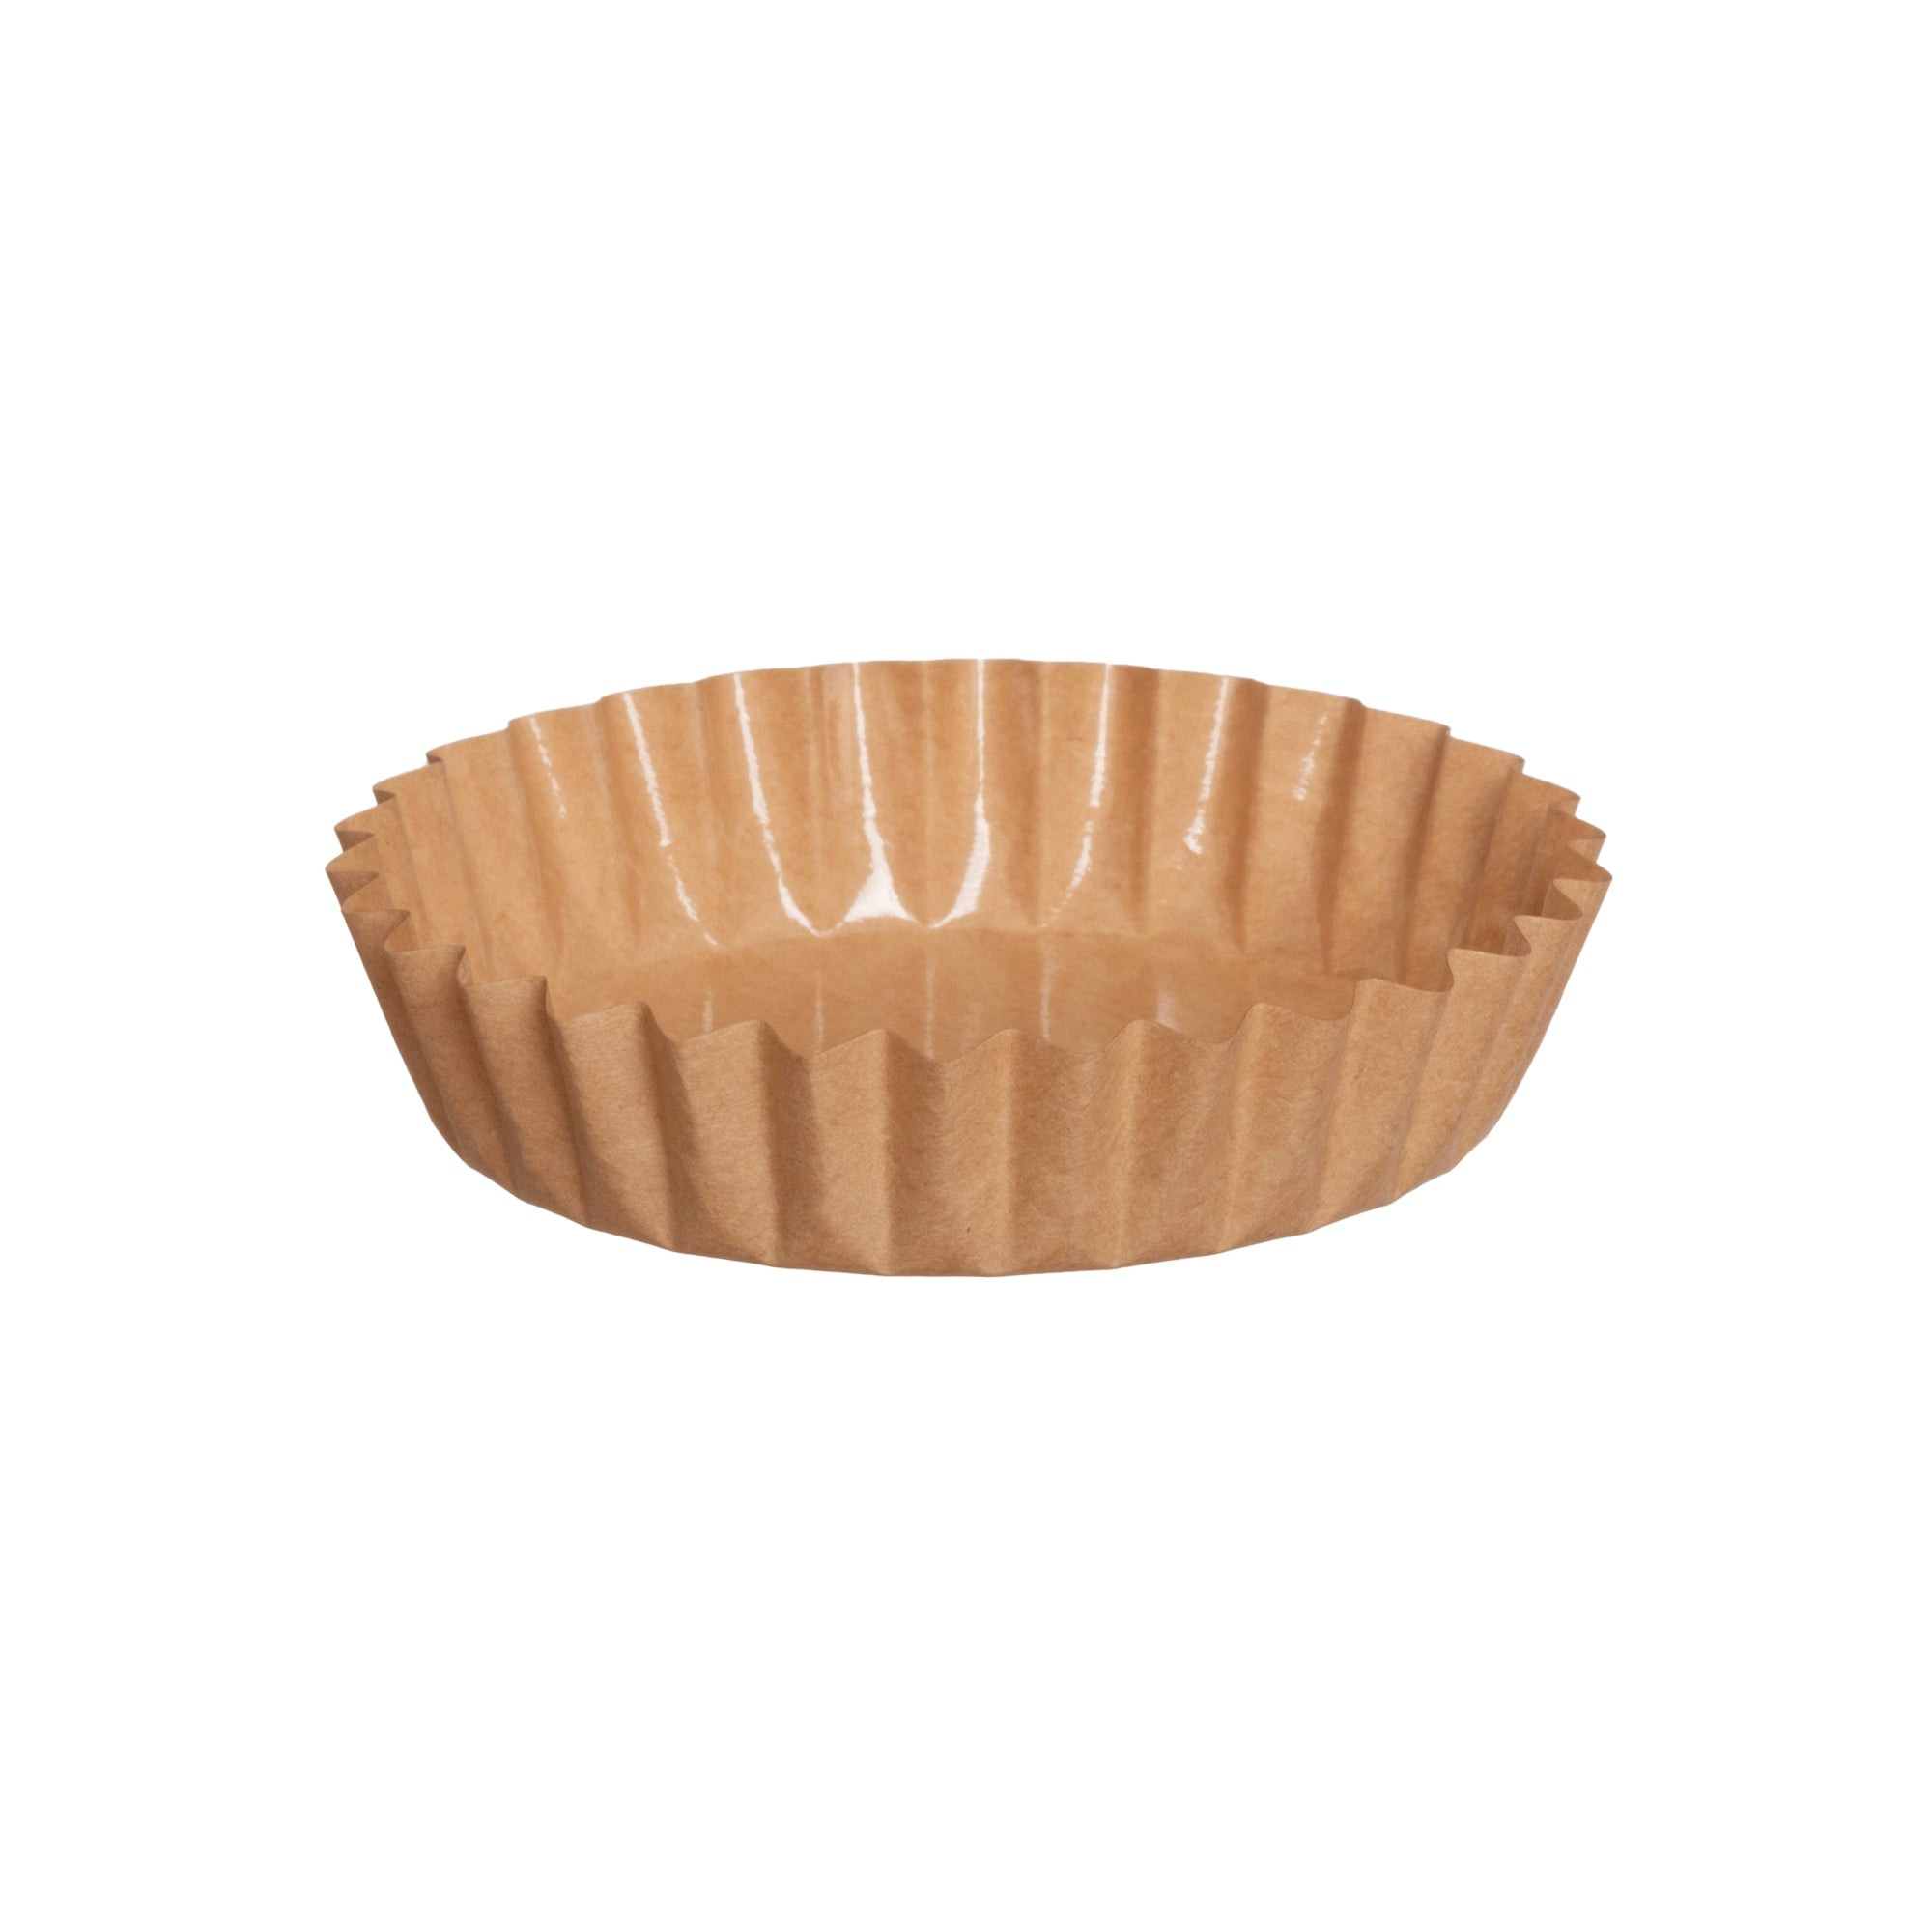 Ruffled Baking Cups, PTC07522J - Welcome Home Brands